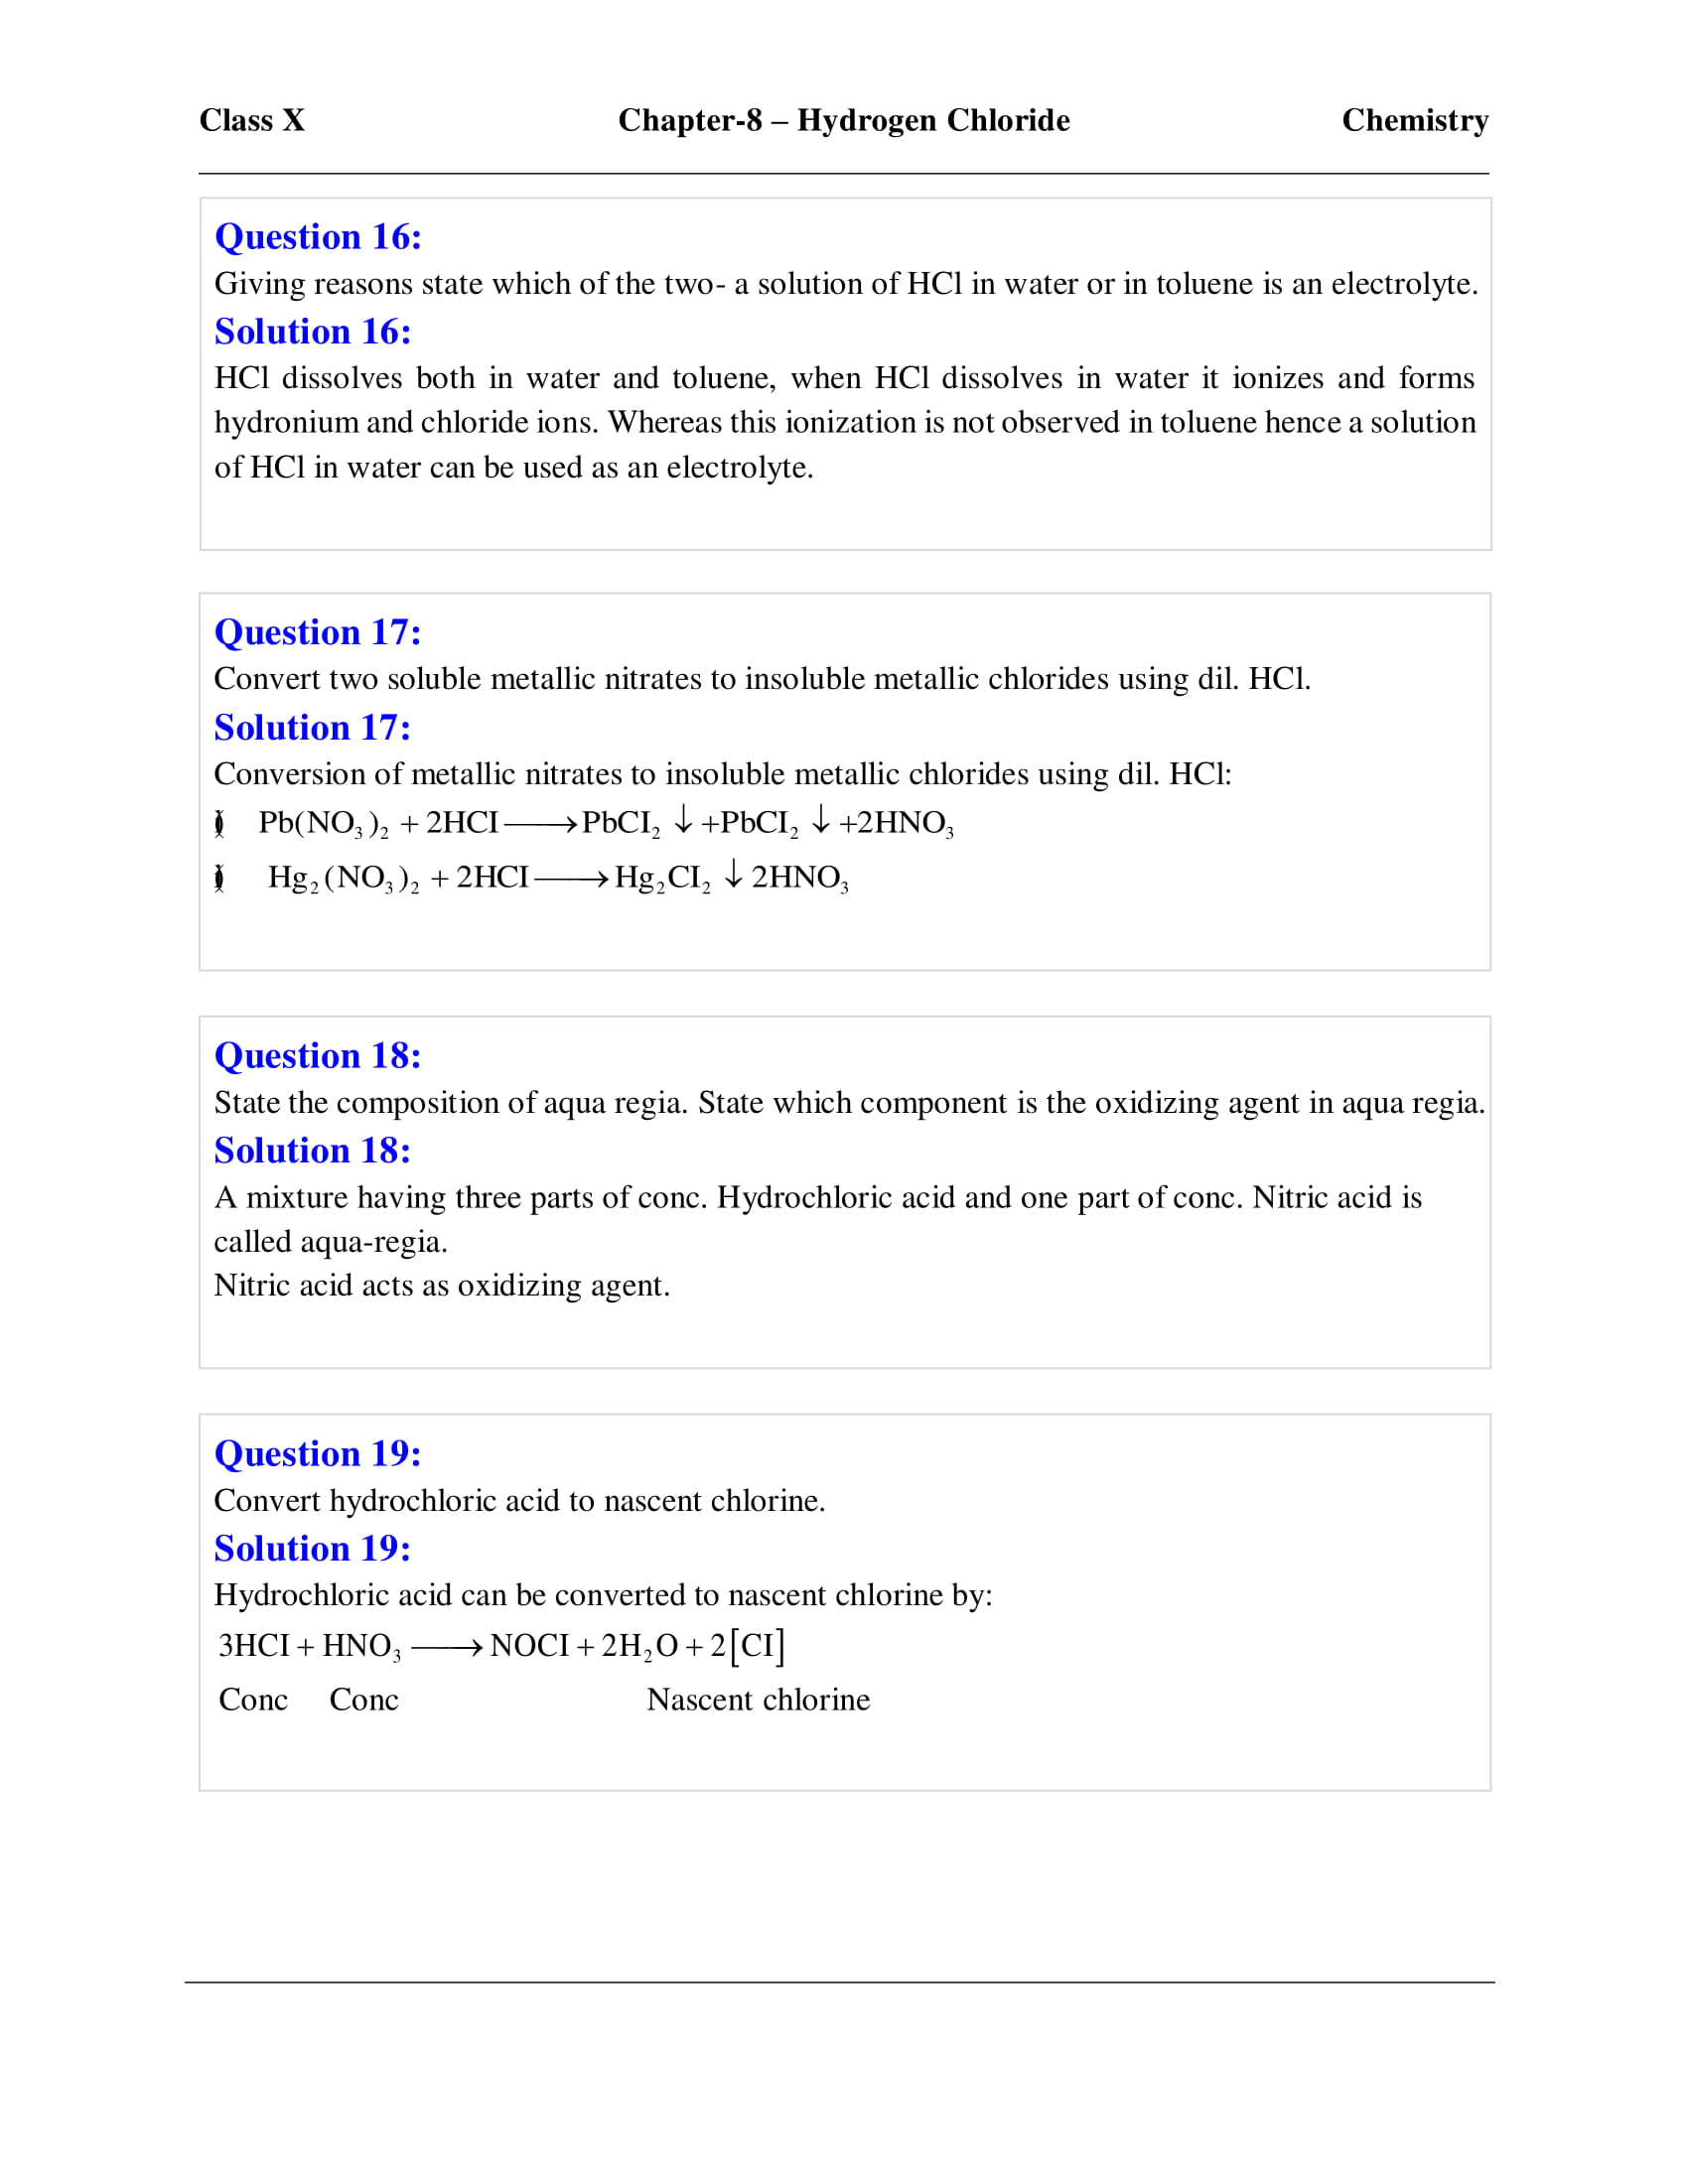 icse-selina-chemistry-solutions-class-10-chapter-8-study-of-compounds-hydrogen-chloride-08